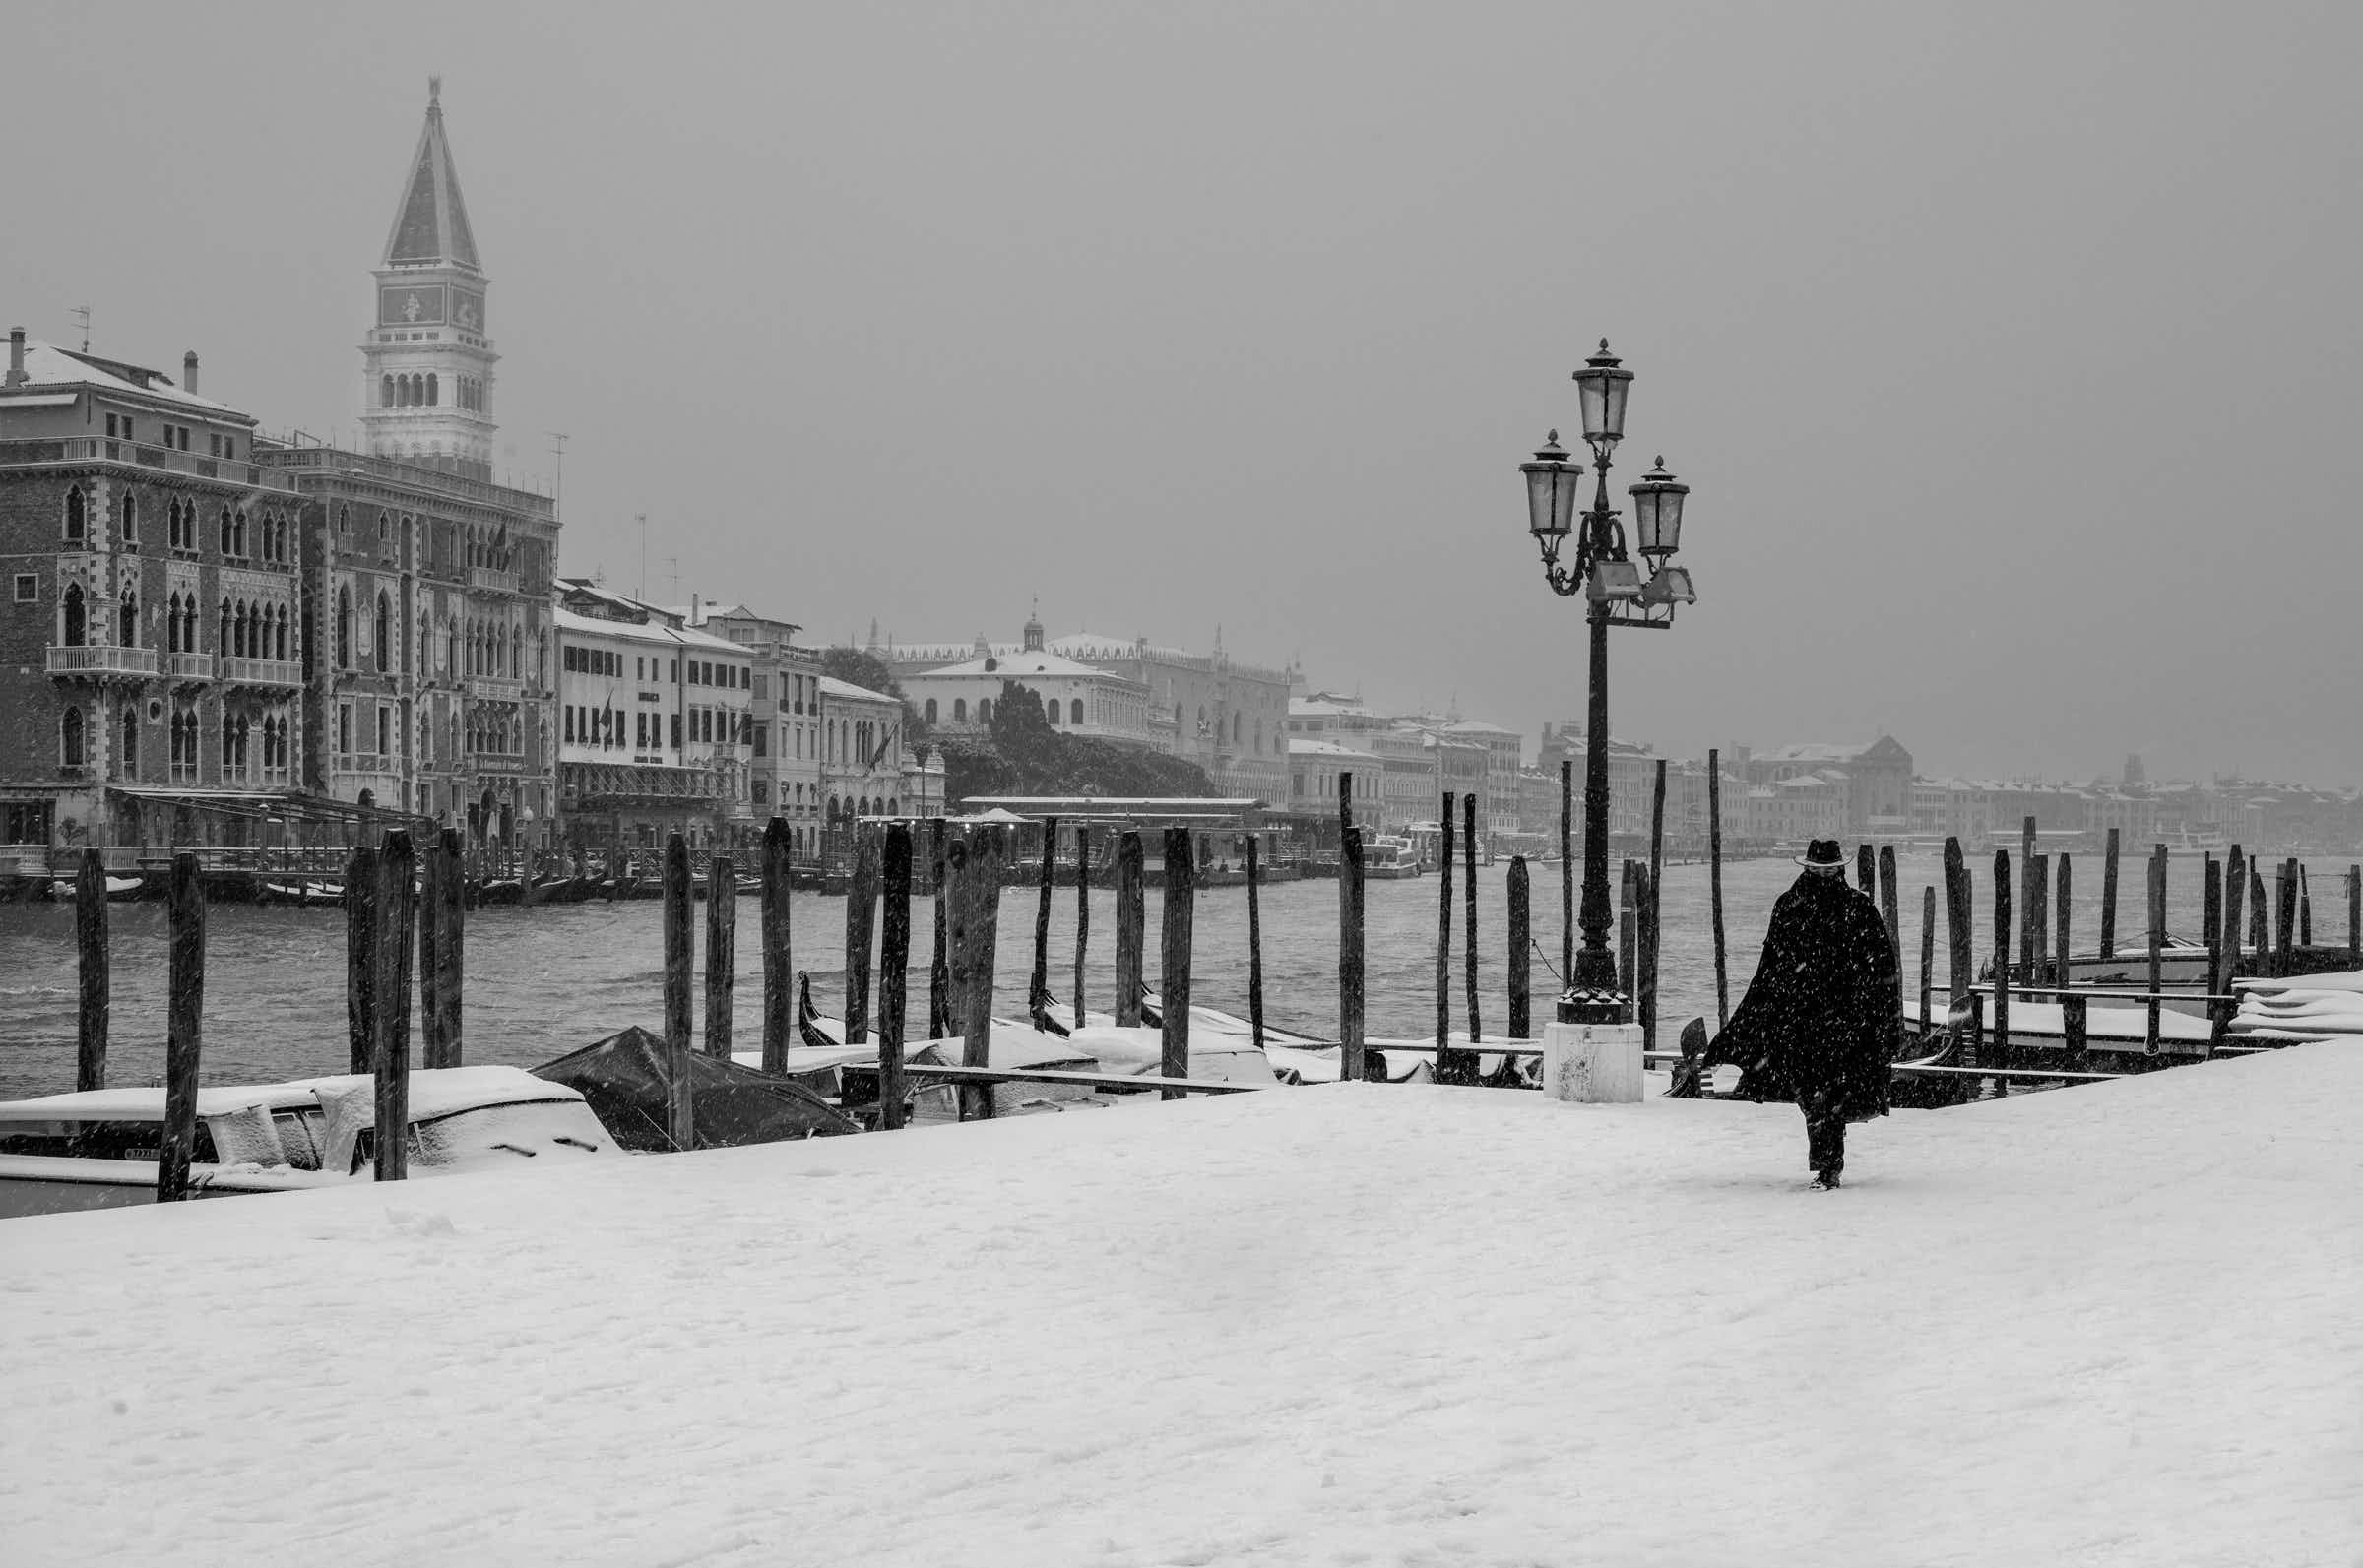 See the timeless beauty of Venice in these black and white shots